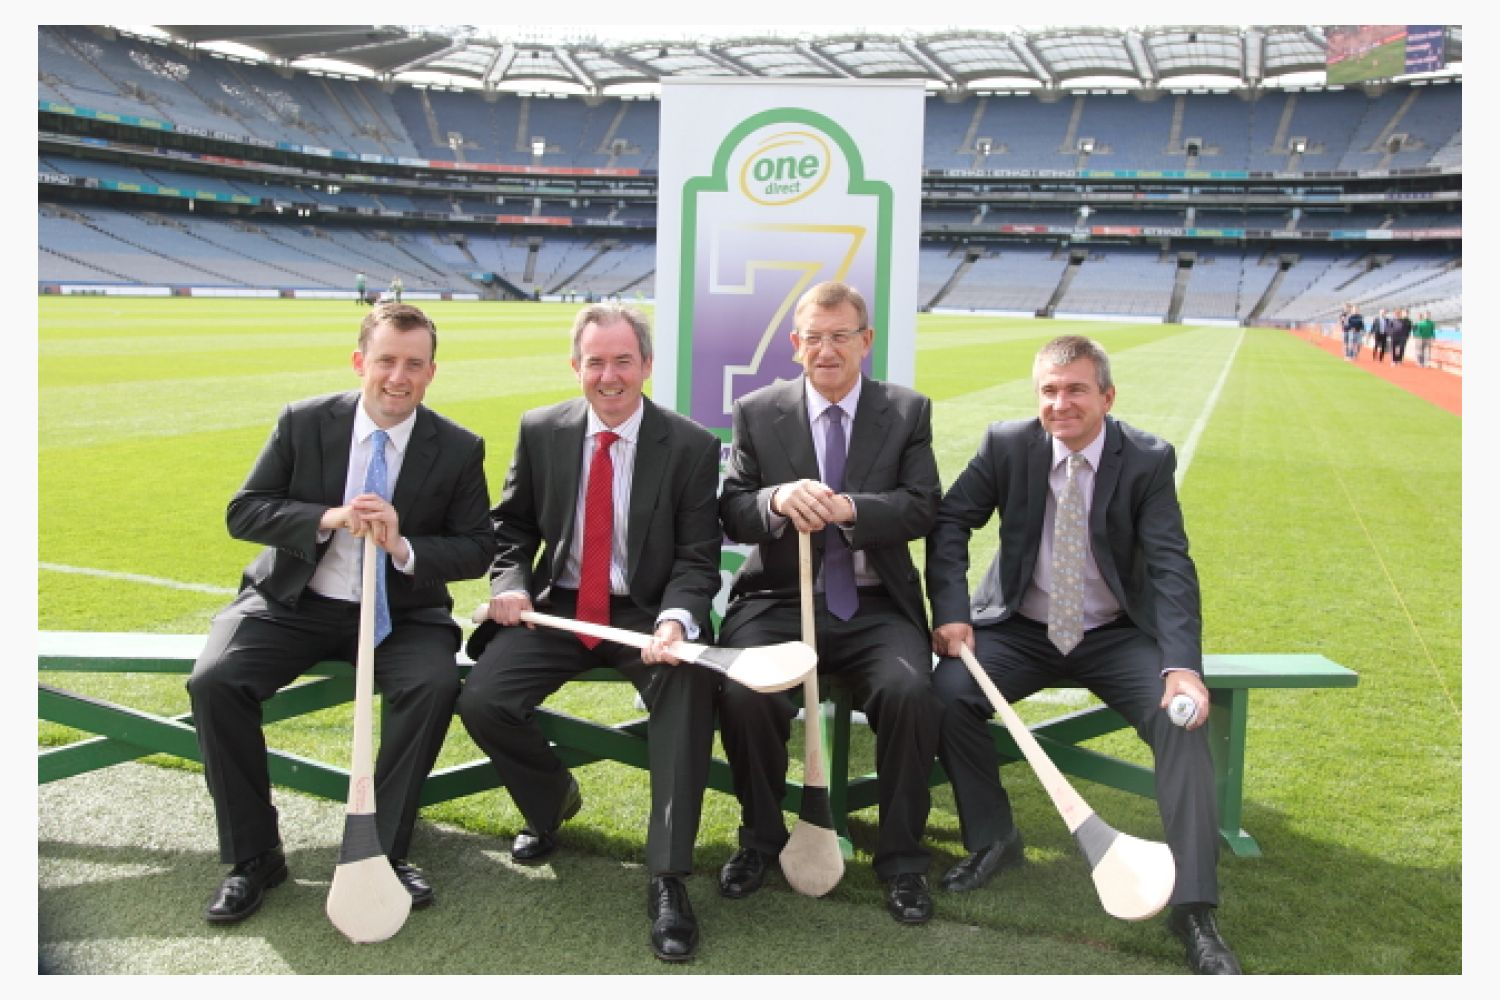 2012 Press Launch of One Direct Kilmacud Crokes Hurling